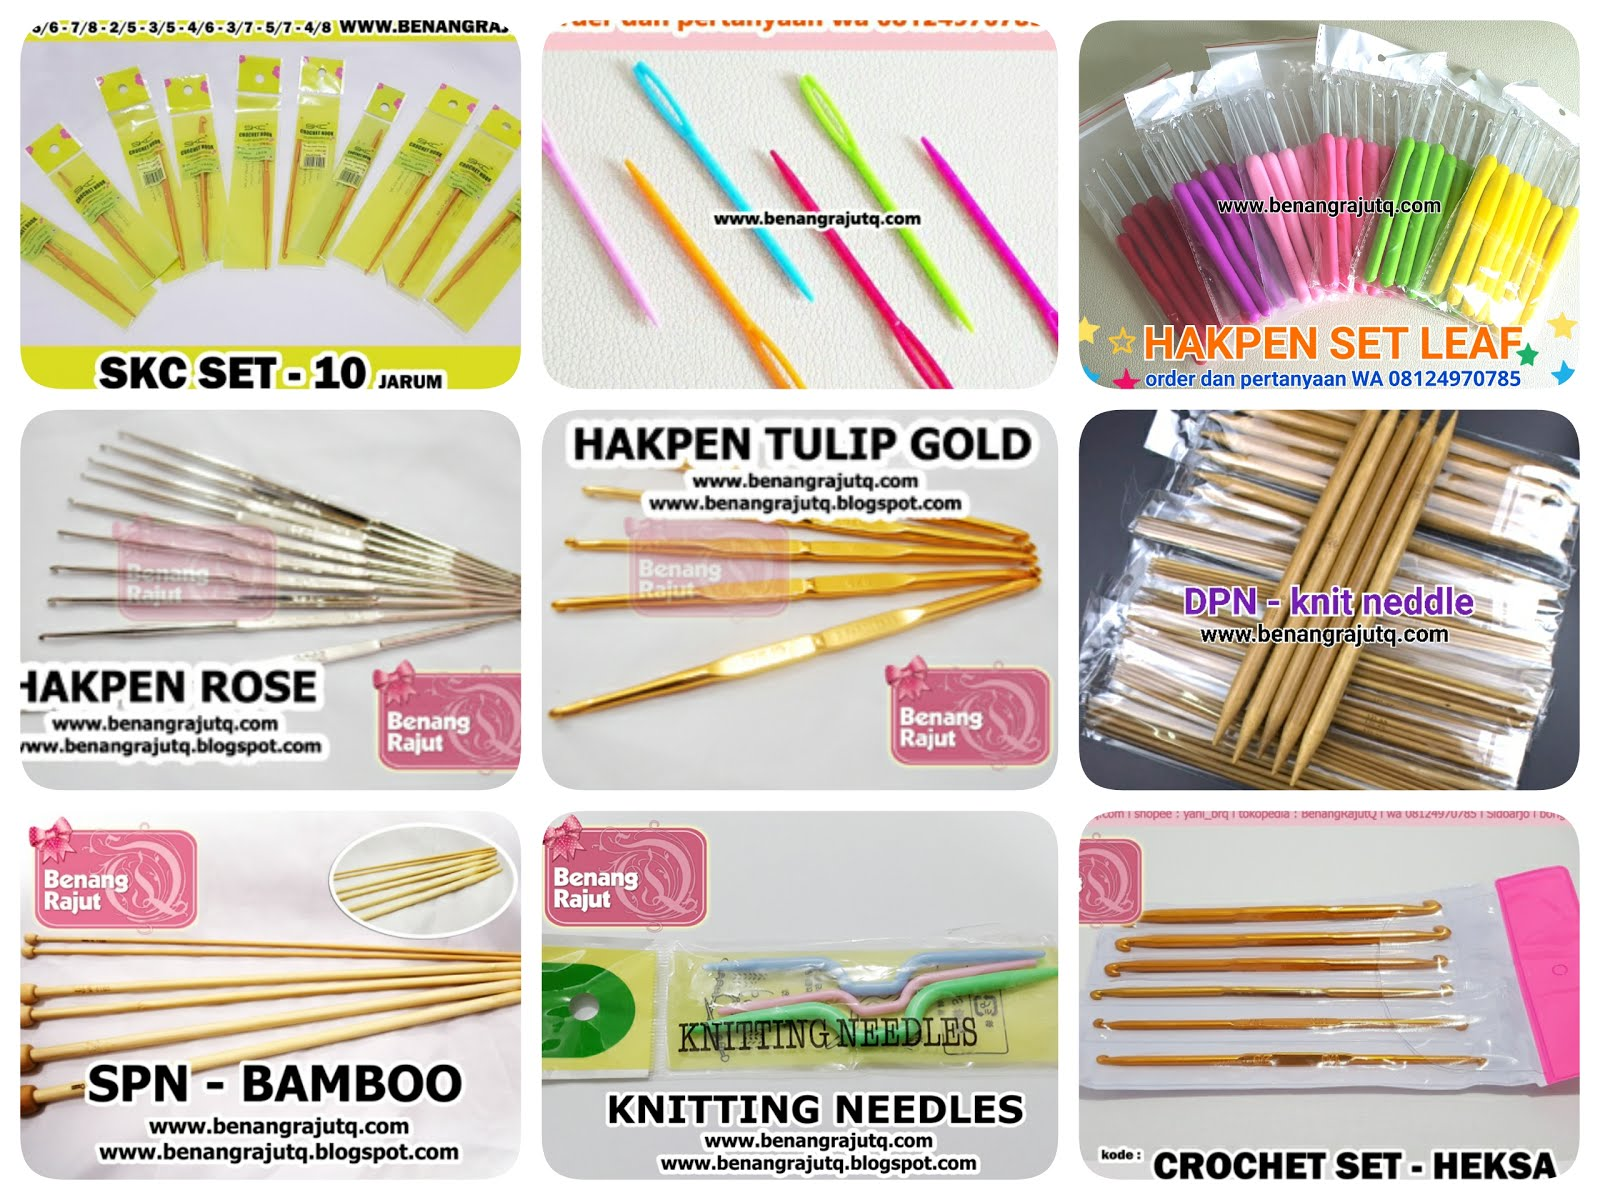 Alat Rajut Crochet & Knitting